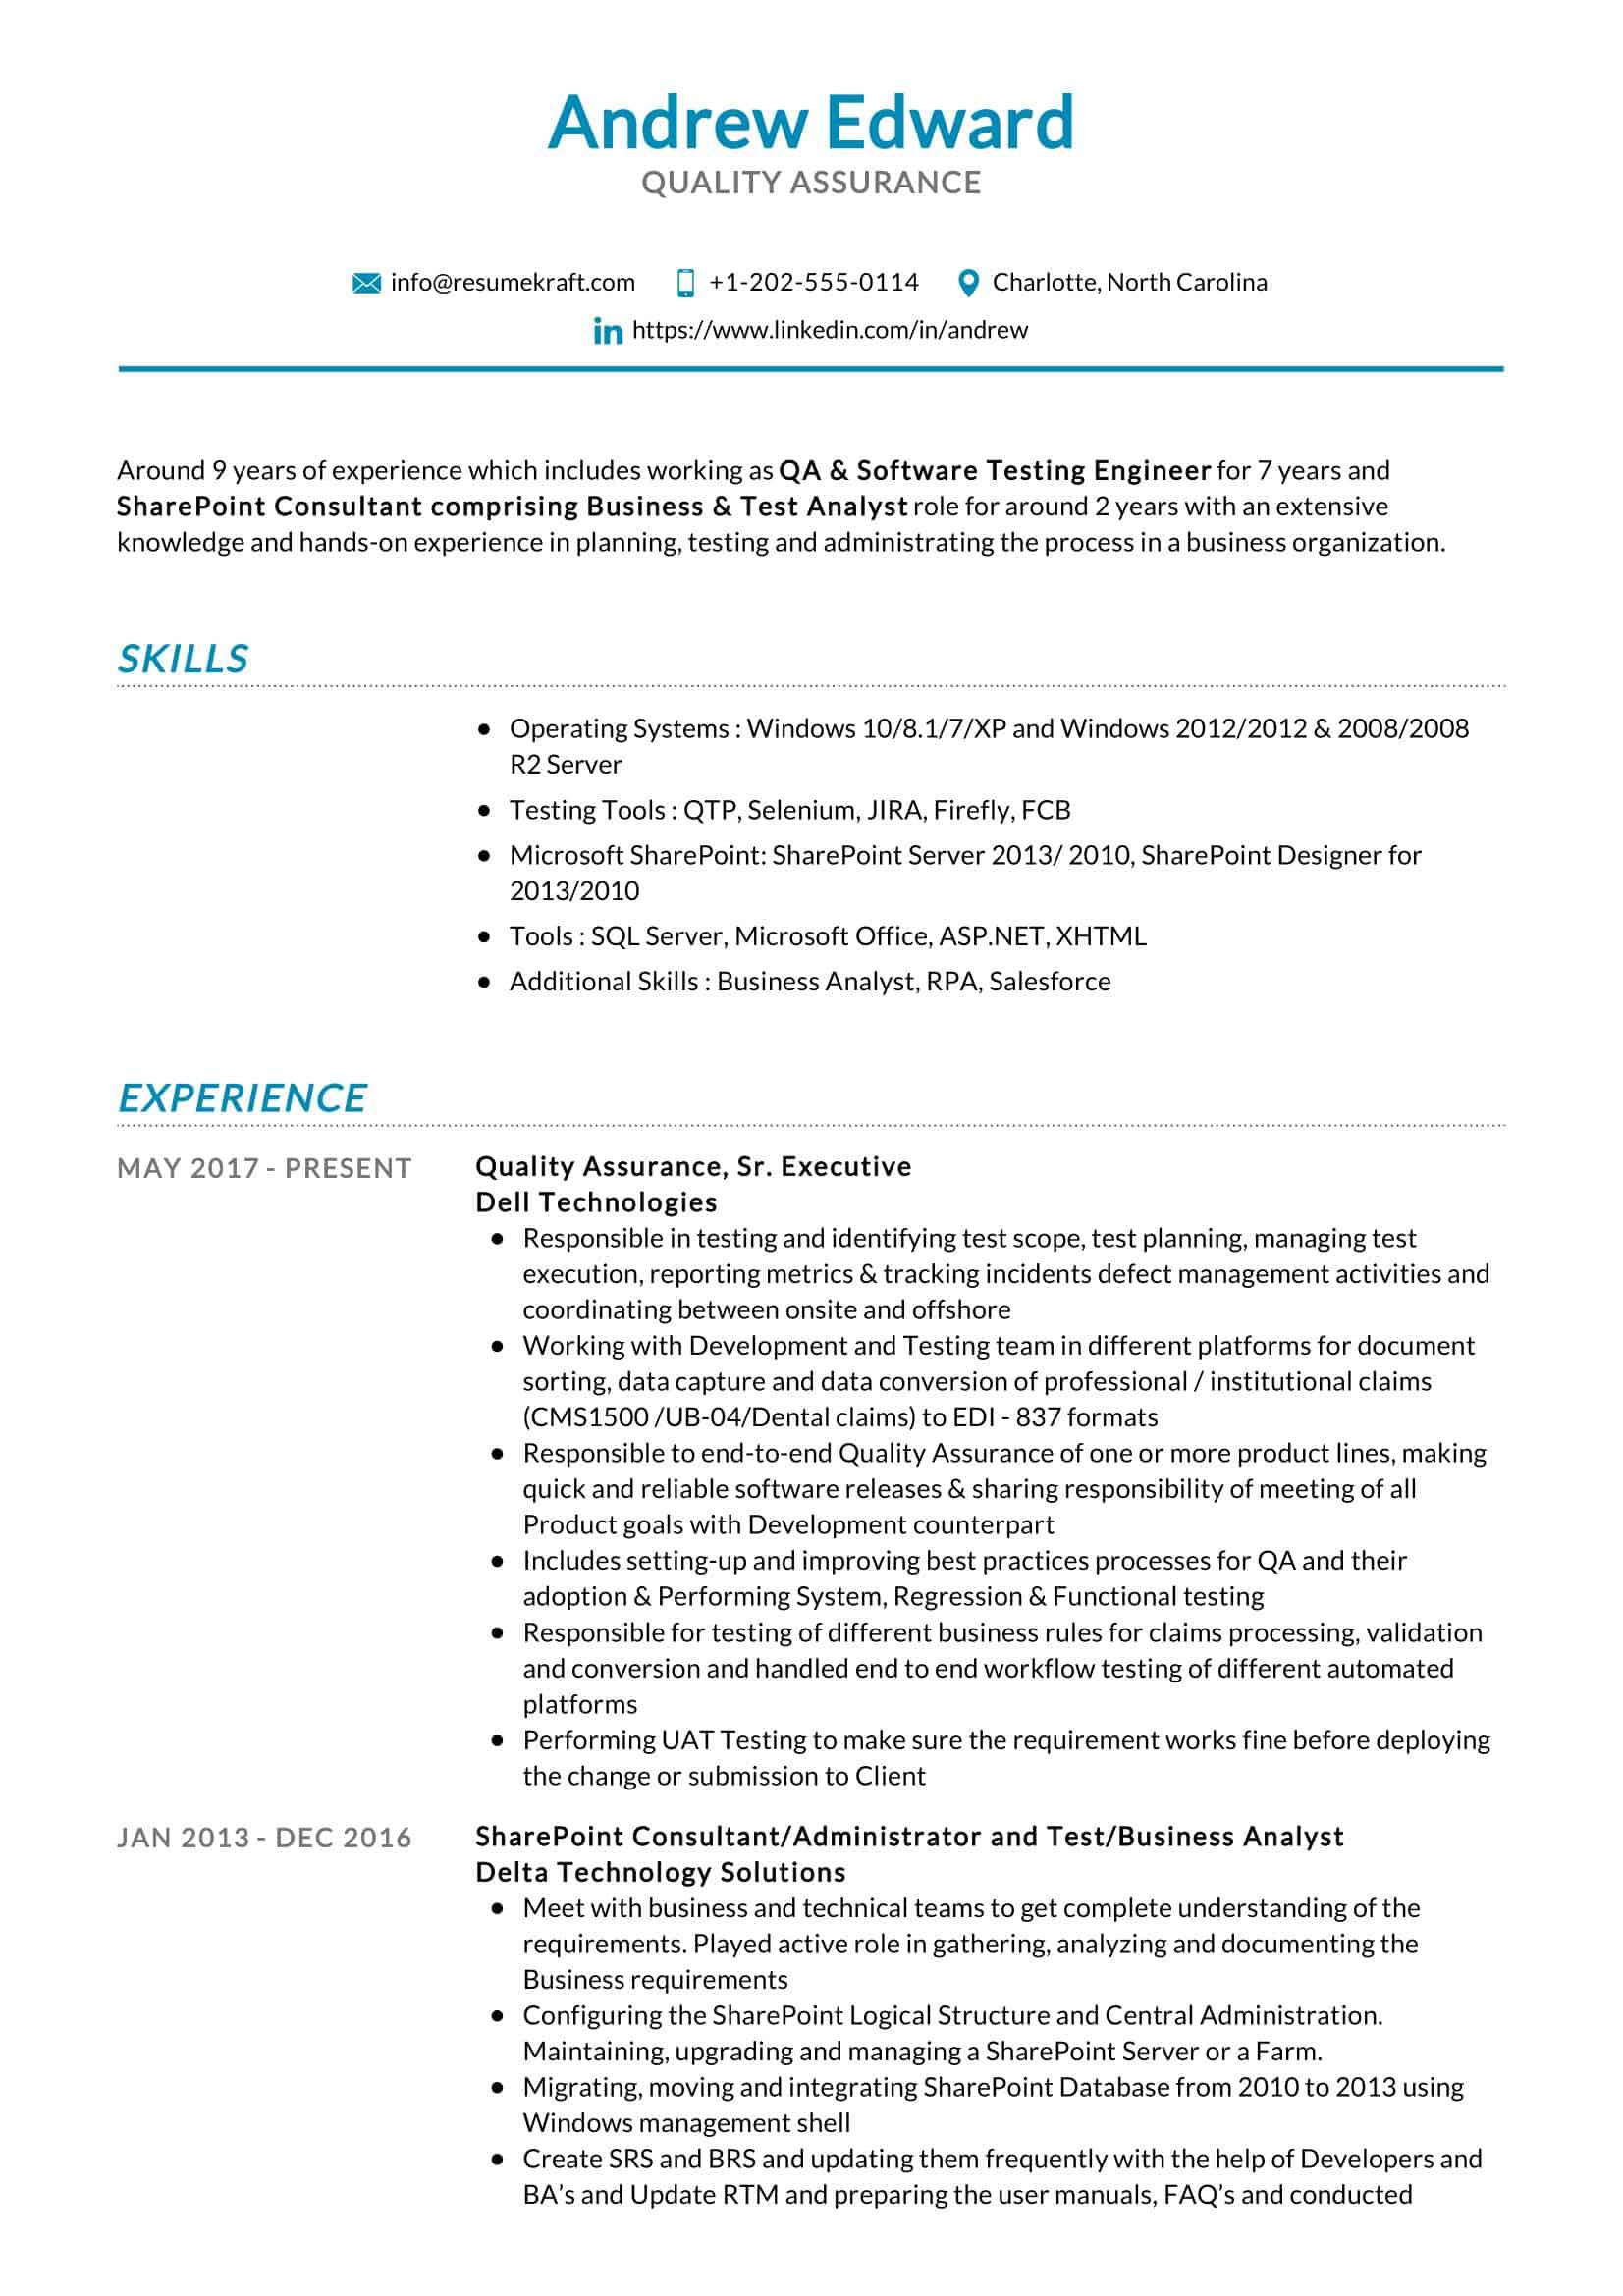 quality assurance resume sample resumekraft itouch reviews of elon musk currently Resume Quality Assurance Resume Sample